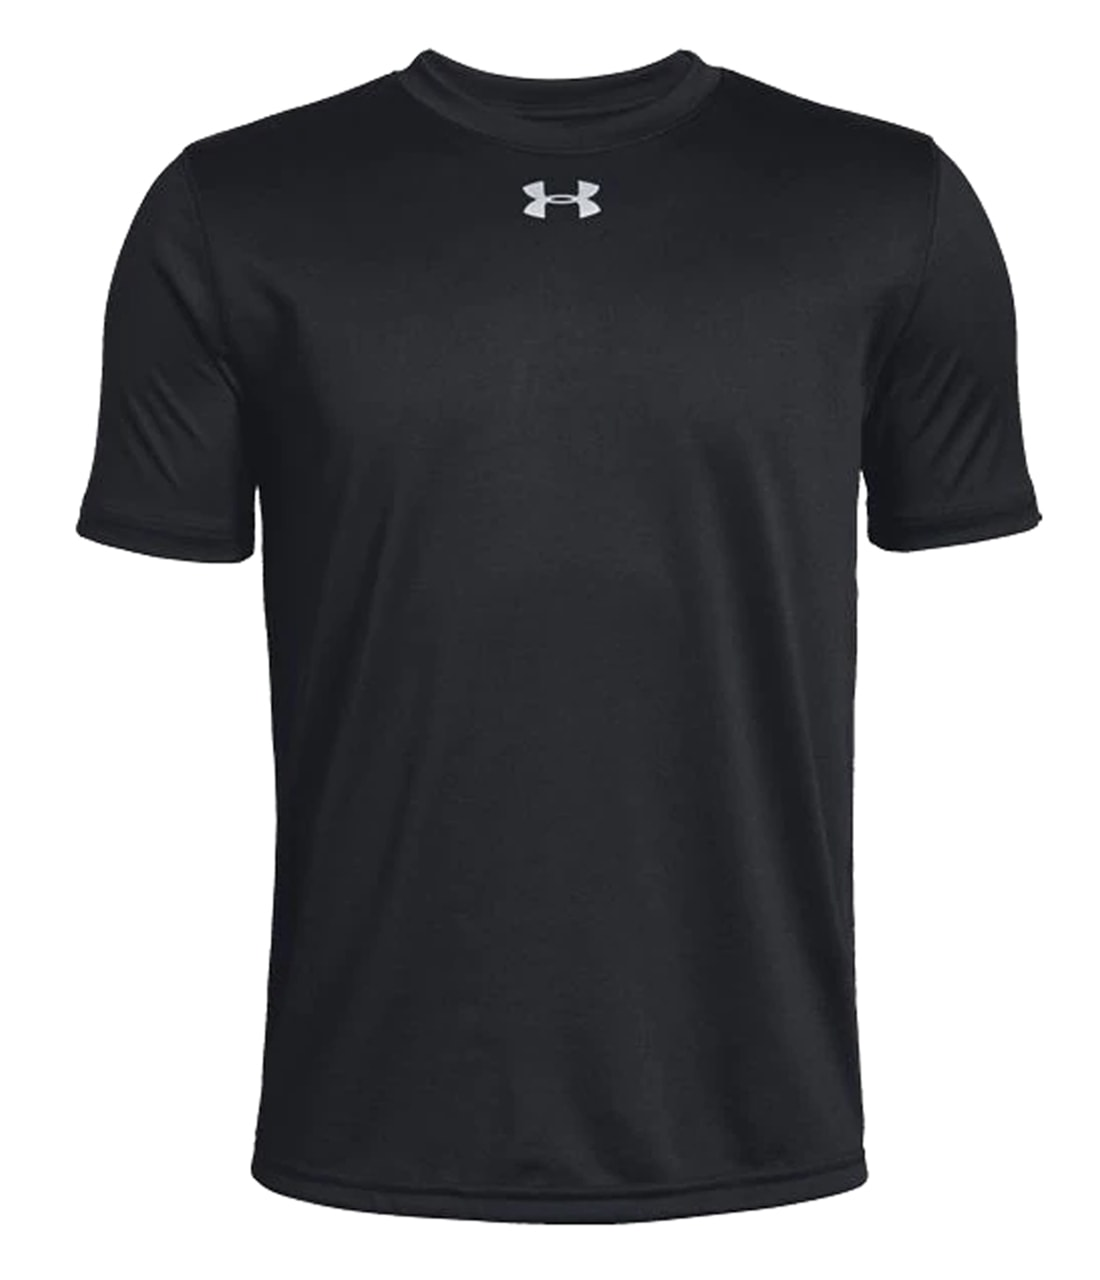 Picture of Under Armour Youth Short Sleeve Locker T-Shirt